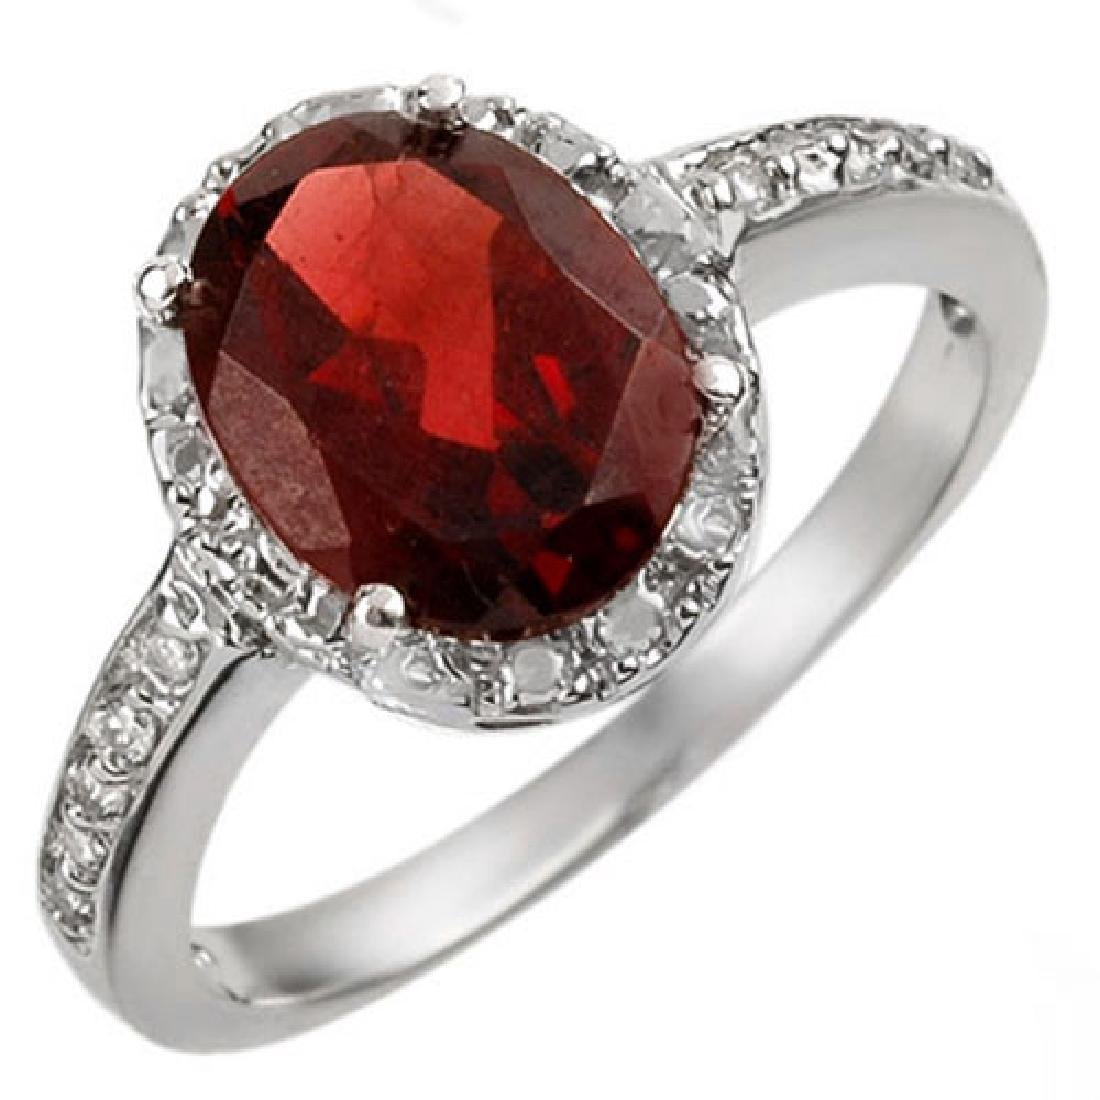 2.10 CTW Garnet & Diamond Ring 10K White Gold